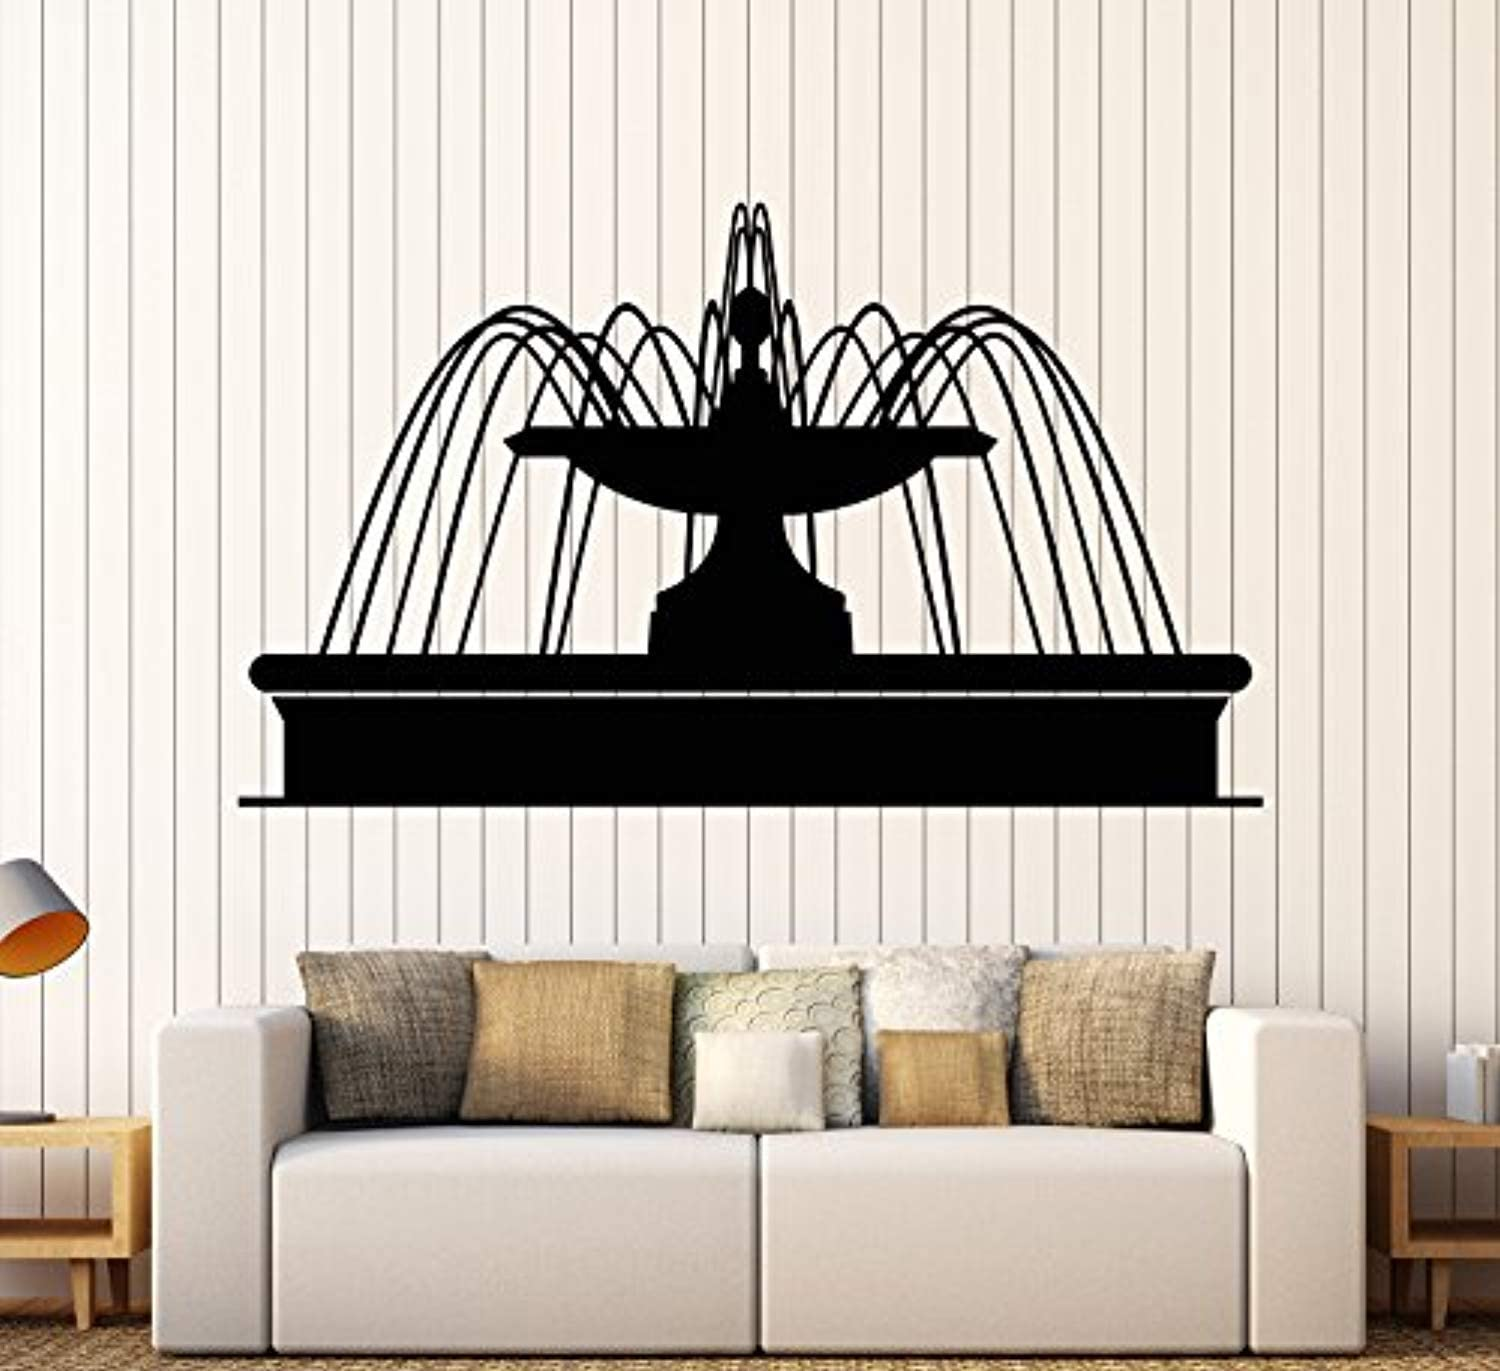 Vinyl Wall Decal Fountain Park Water Garden Design Rooms Stickers Large Decor (949LK)